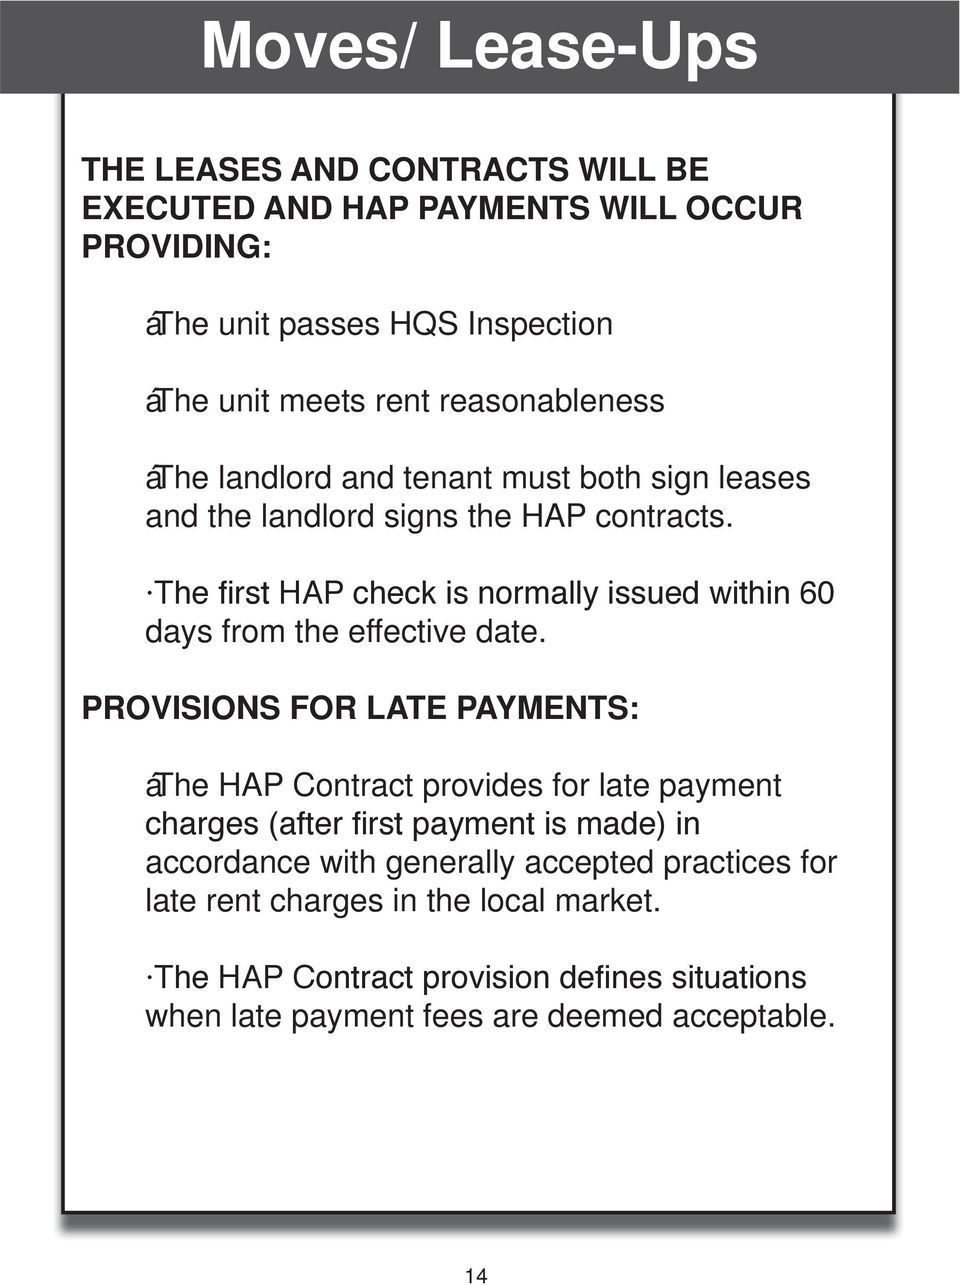 The first HAP check is normally issued within 60 days from the effective date.